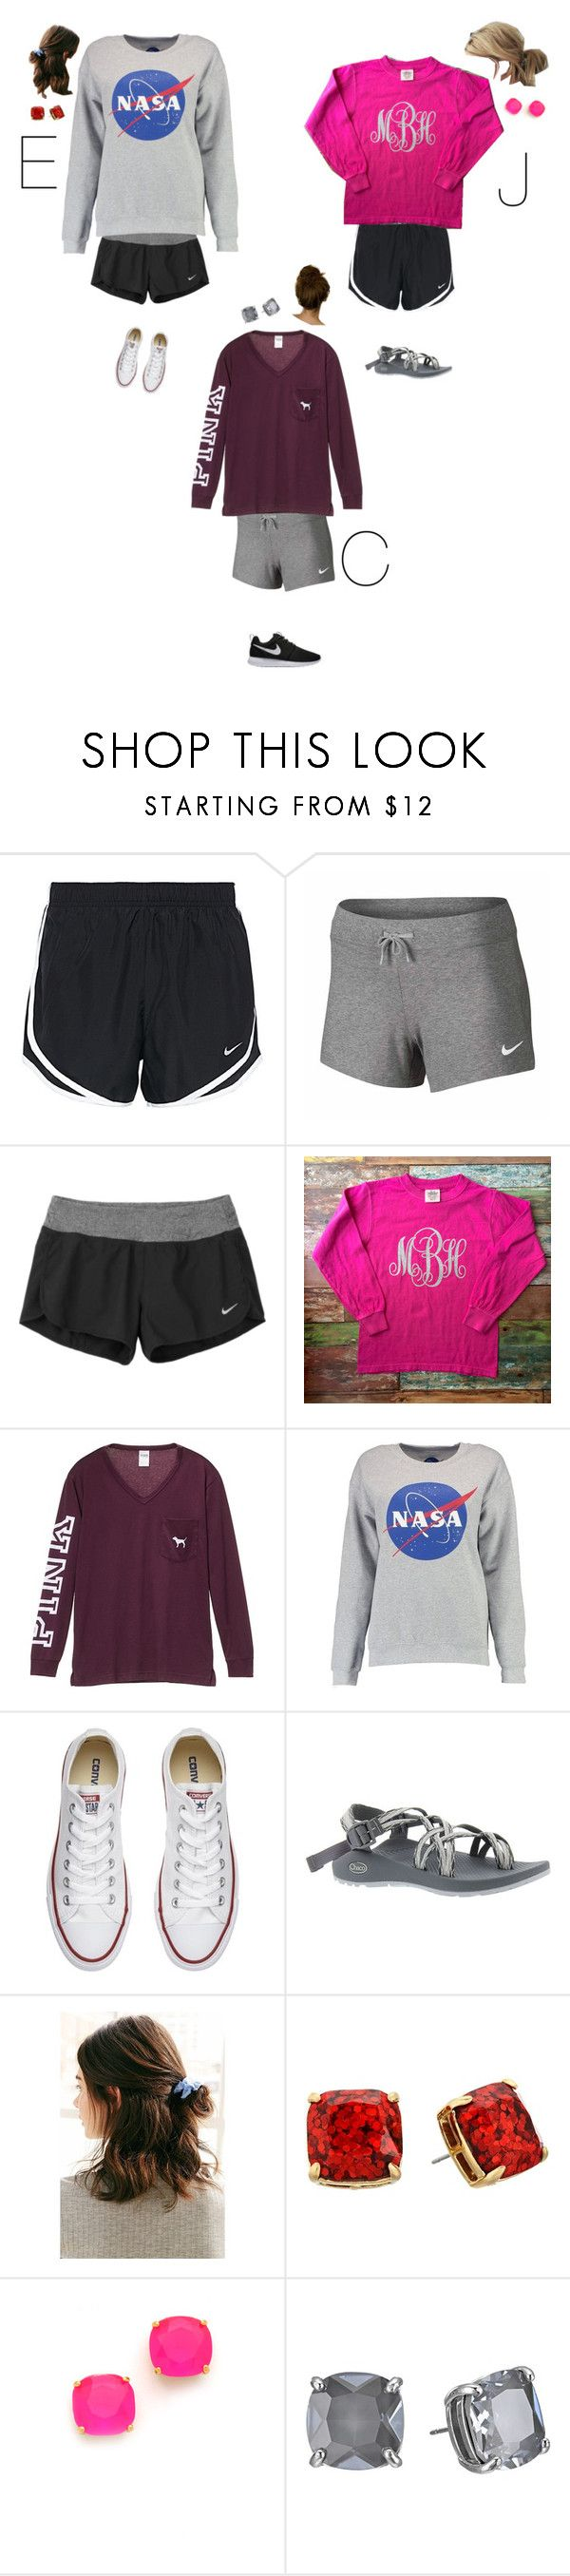 """""""Soup's On - pizza roll party 📚"""" by thekaileea ❤ liked on Polyvore featuring NIKE, Victoria's Secret PINK, Boohoo, Converse, Chaco, Urban Outfitters and Kate Spade"""